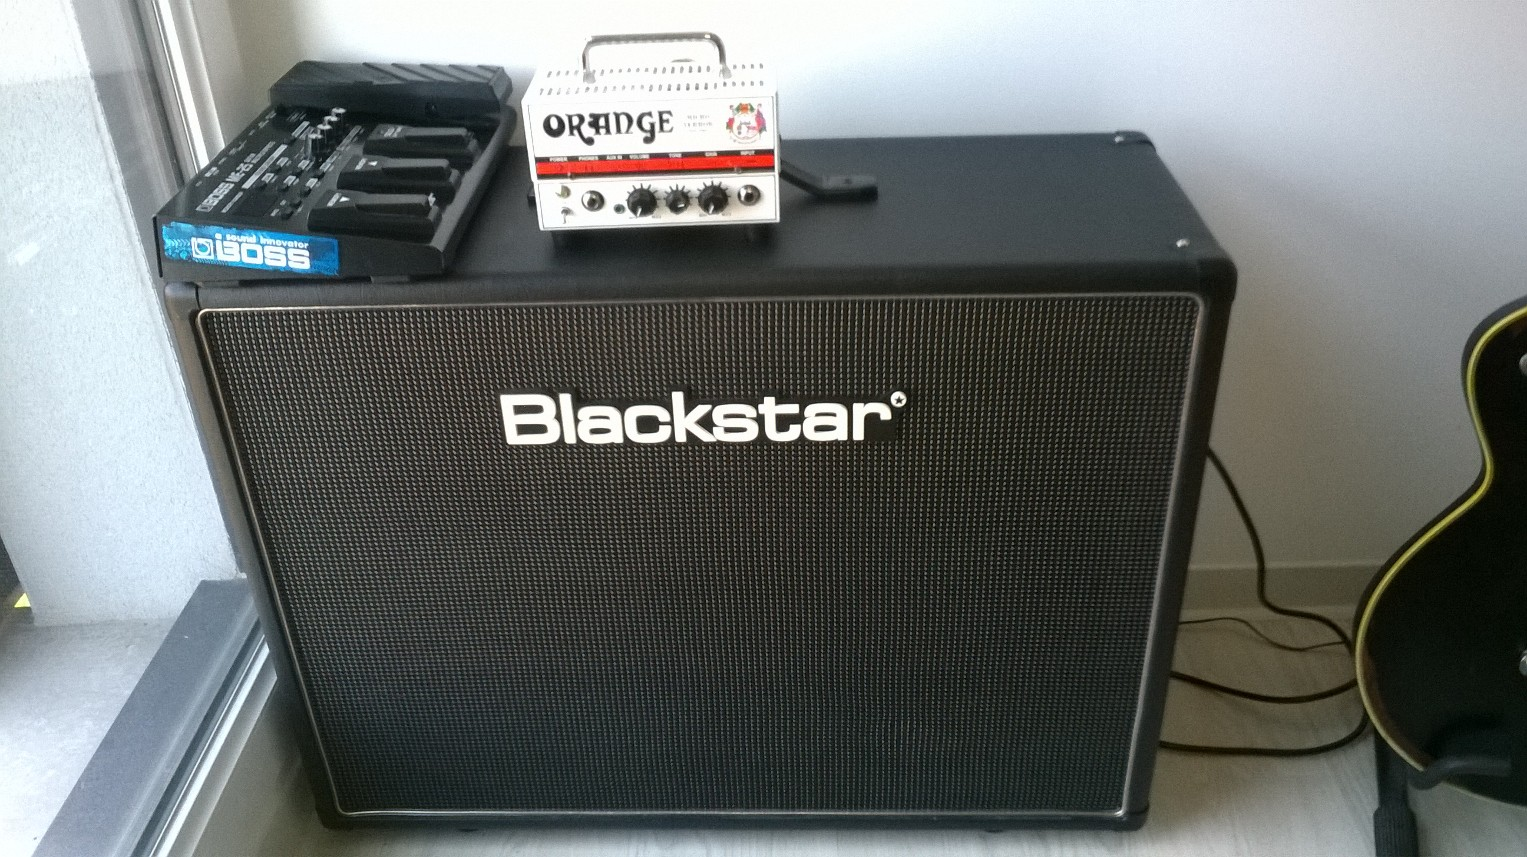 Blackstar Amplification HTV-212 image (#799422) - Audiofanzine